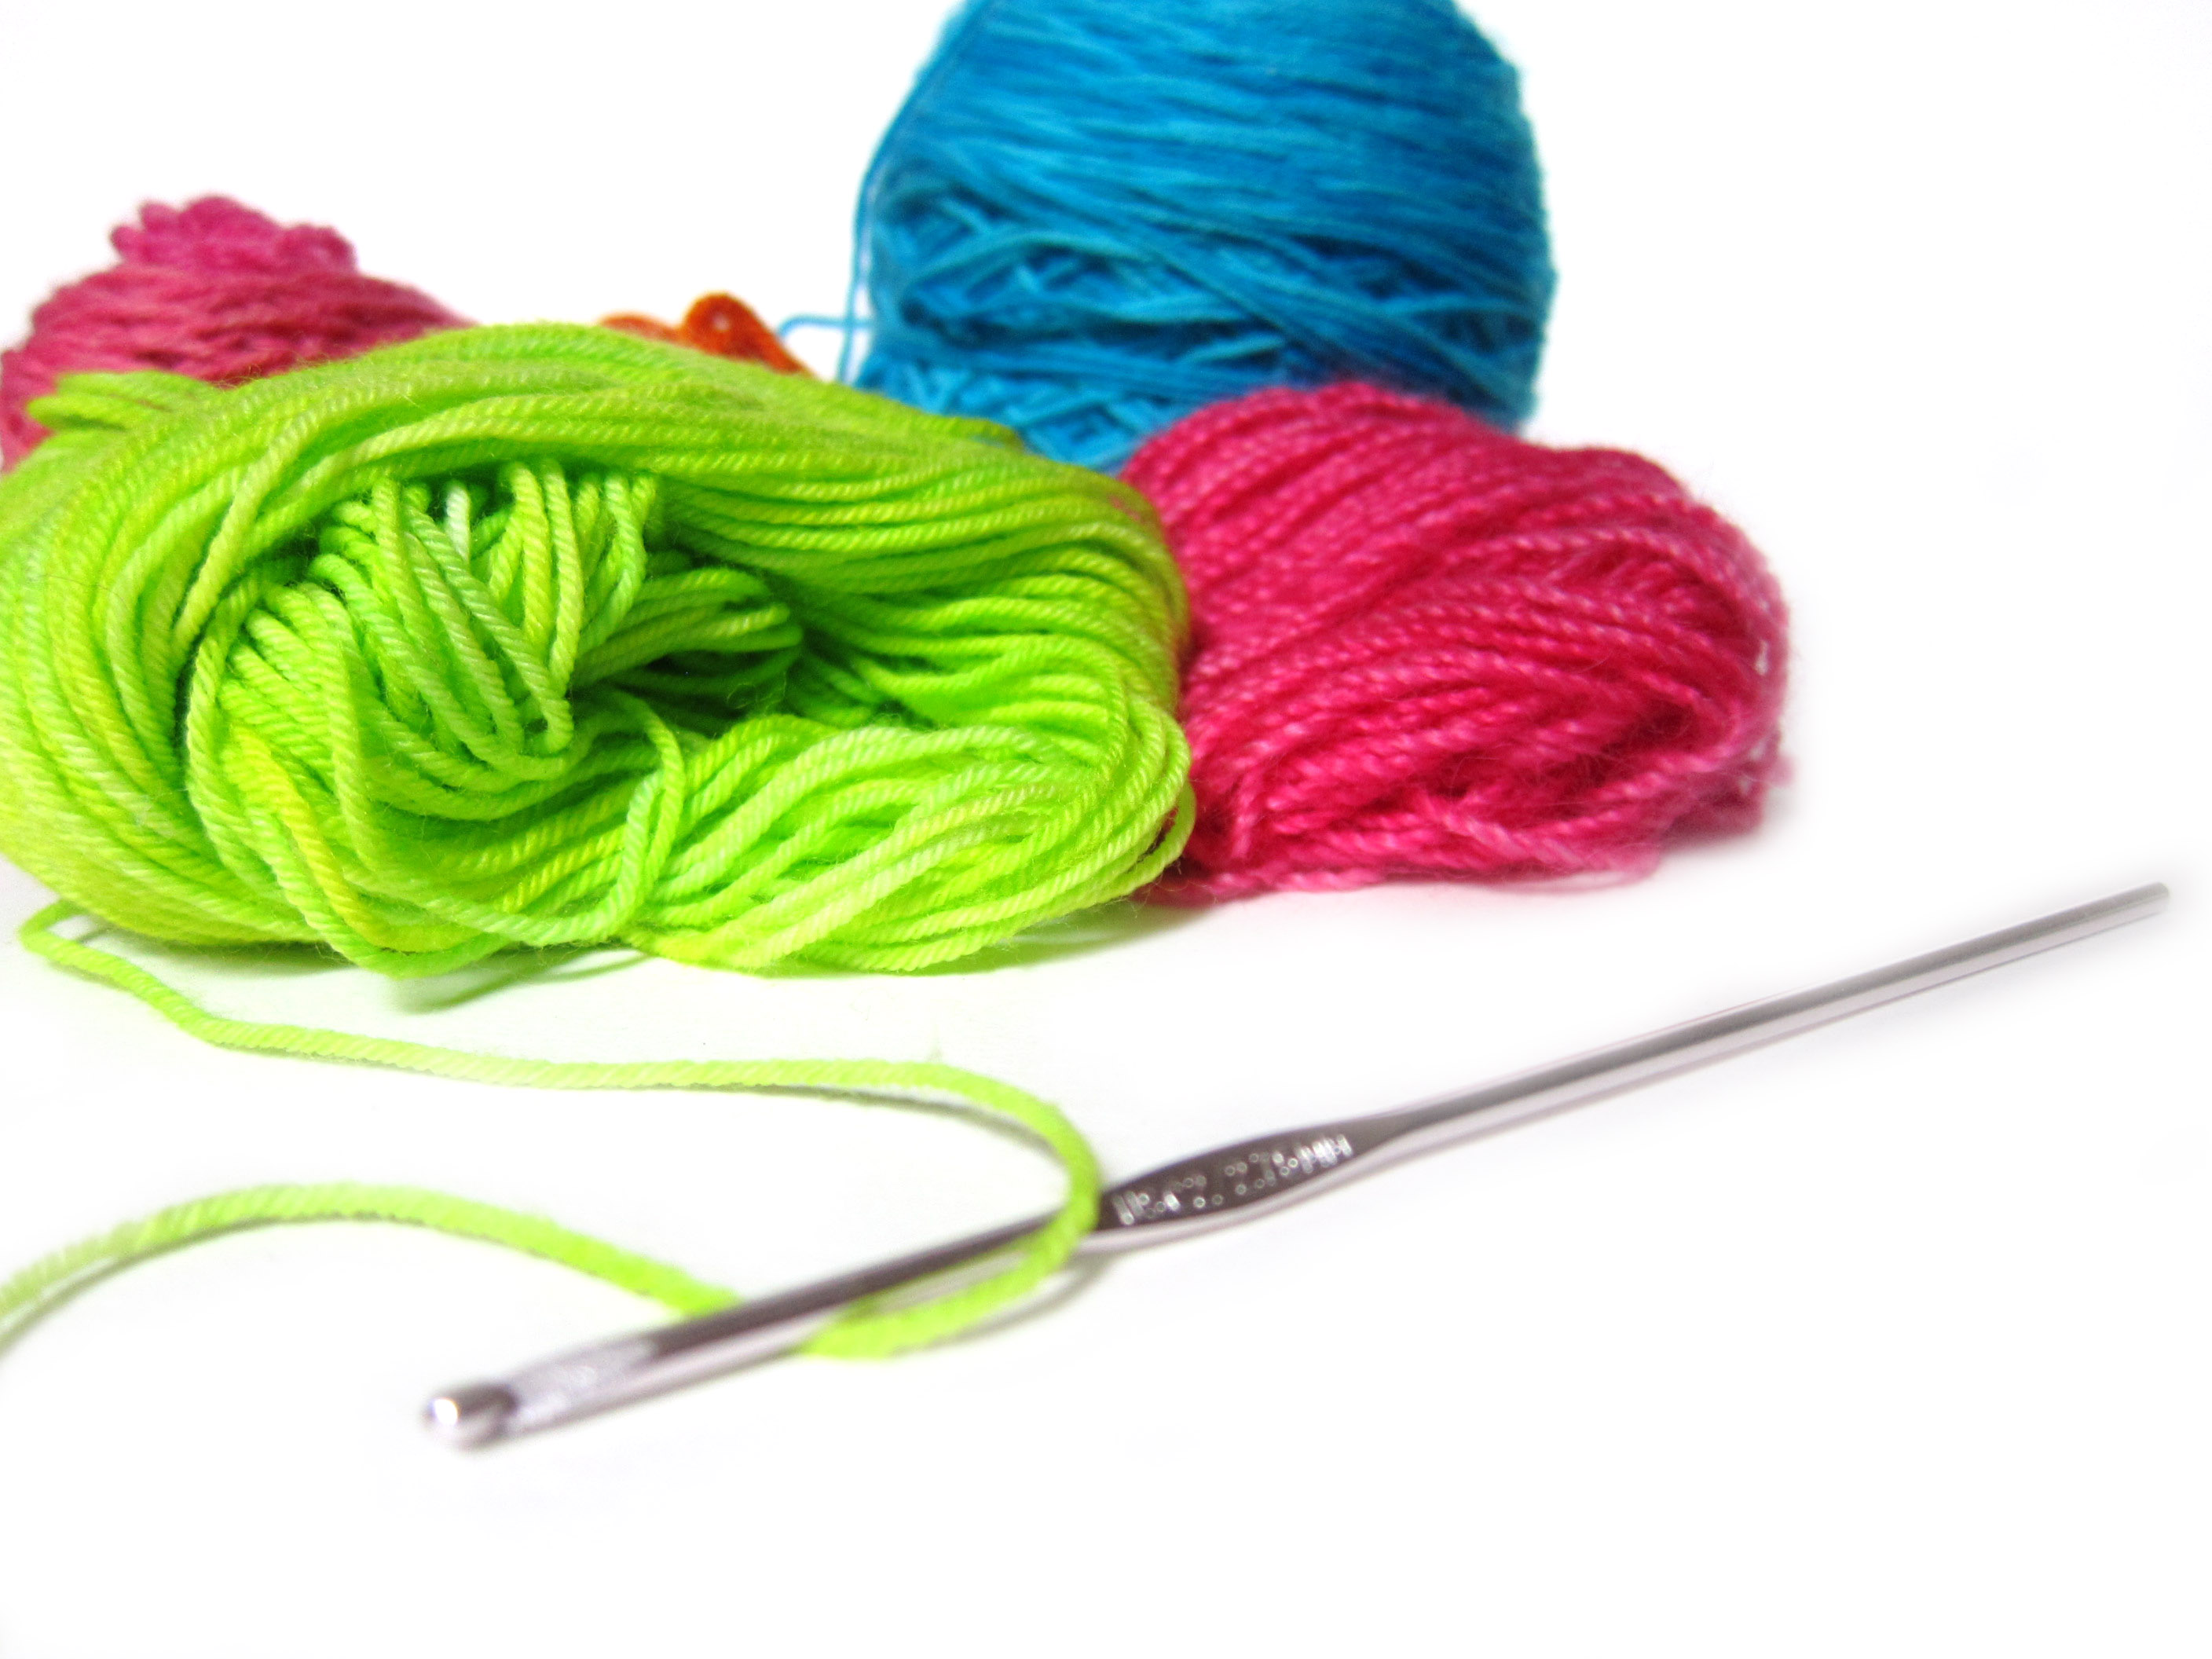 Crocheting Needles And Yarn : Yarn And Crochet Needles crochet hook - and yarn clipart - clipart kid